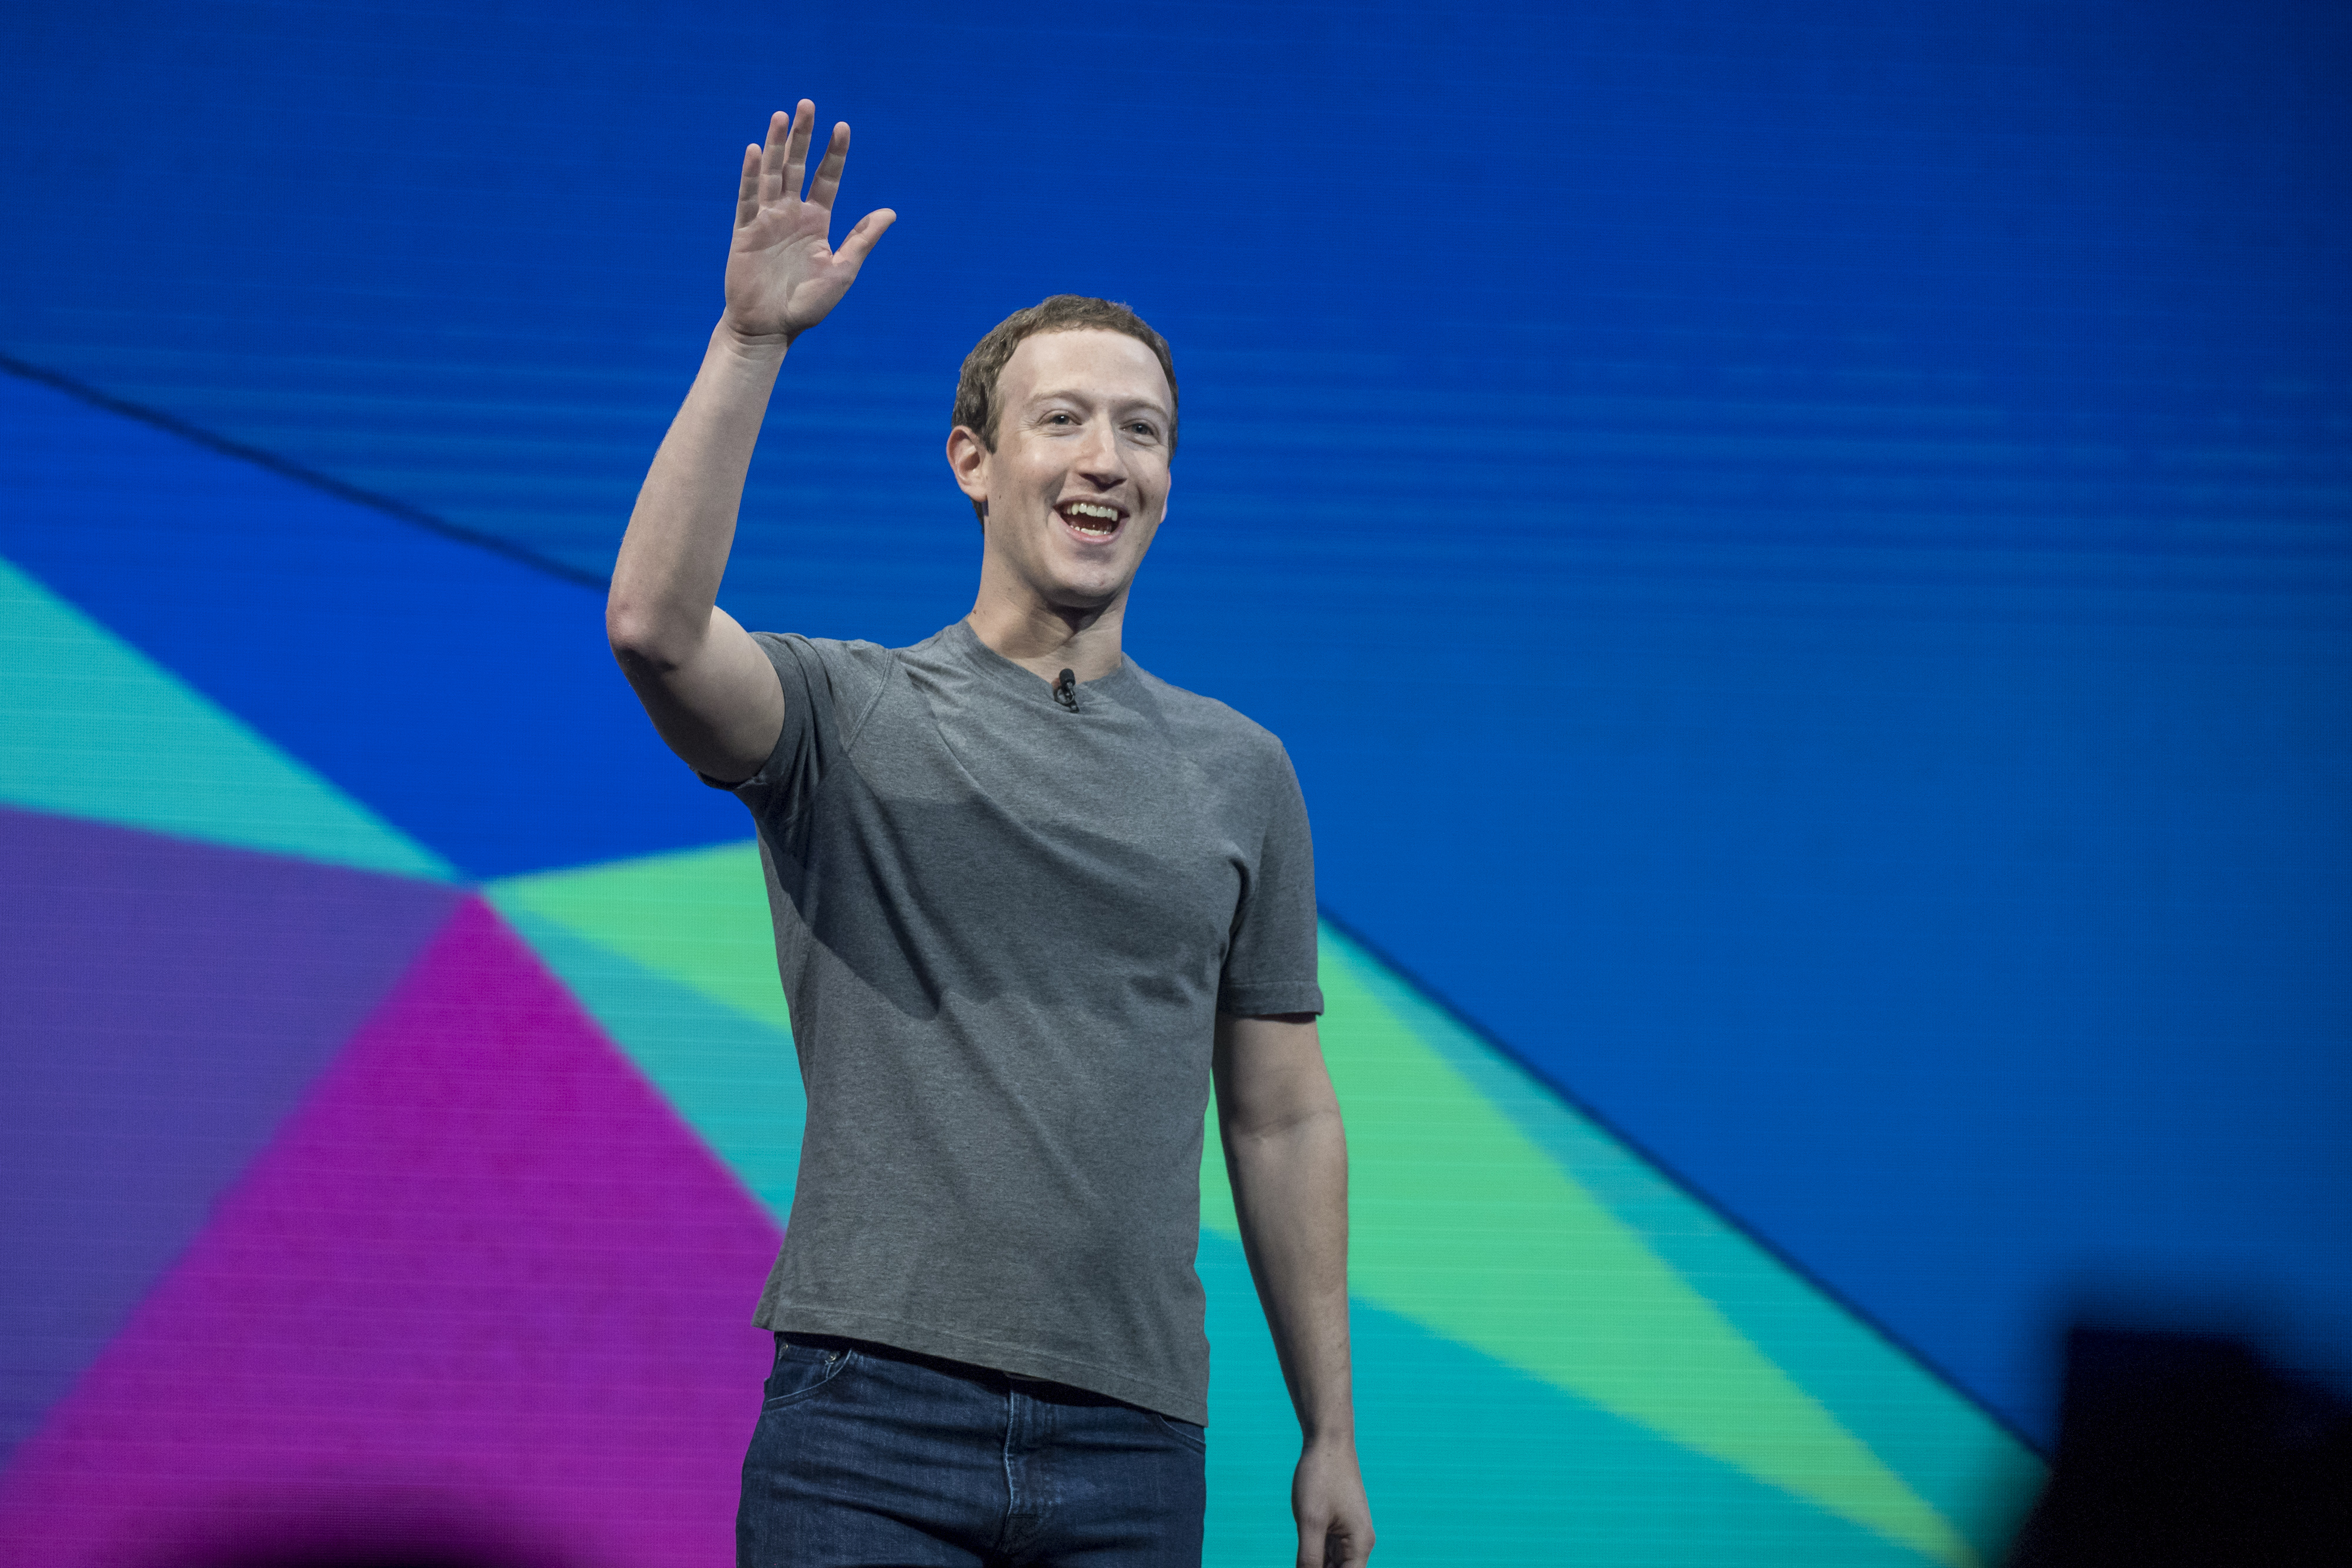 Mark Zuckerberg, chief executive officer and founder of Facebook Inc., waves to attendees during the F8 Developers Conference in San Jose, California, U.S., on Tuesday, April 18, 2017.